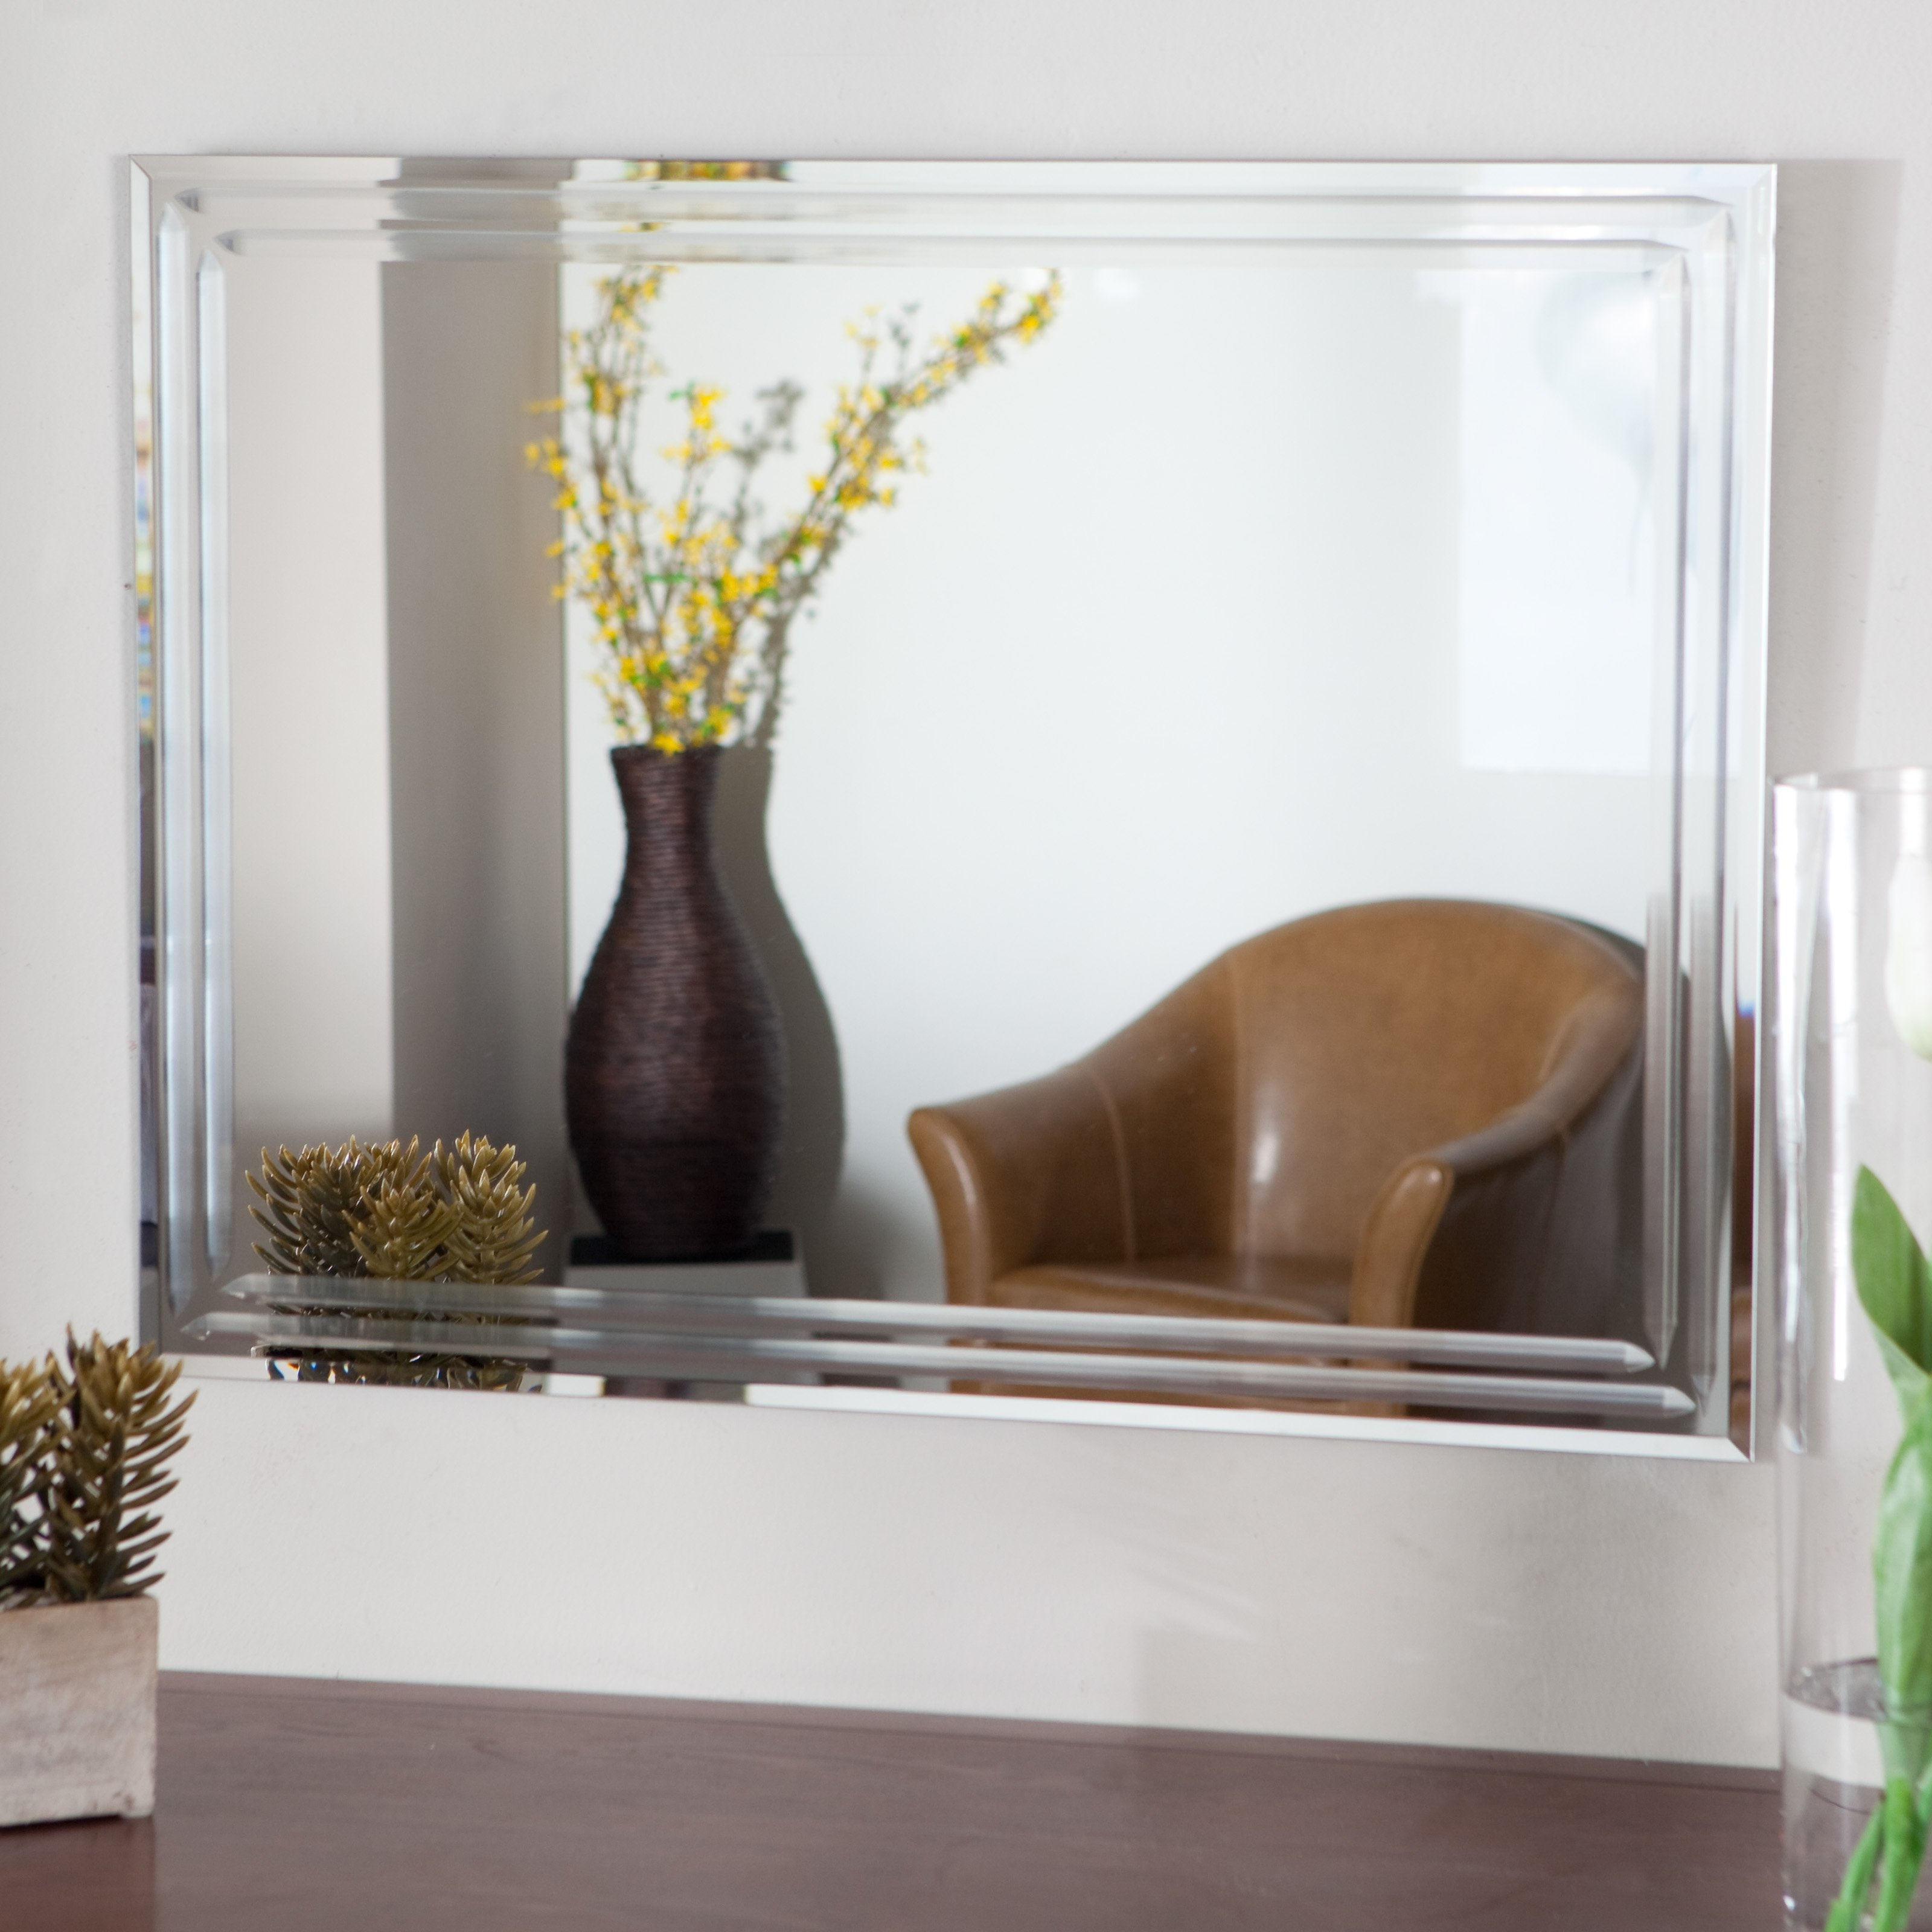 Uttermost Frameless Oval Beveled Vanity Mirror Mirrors At Hayneedle Inside Wall Mirror No Frame (Image 13 of 15)